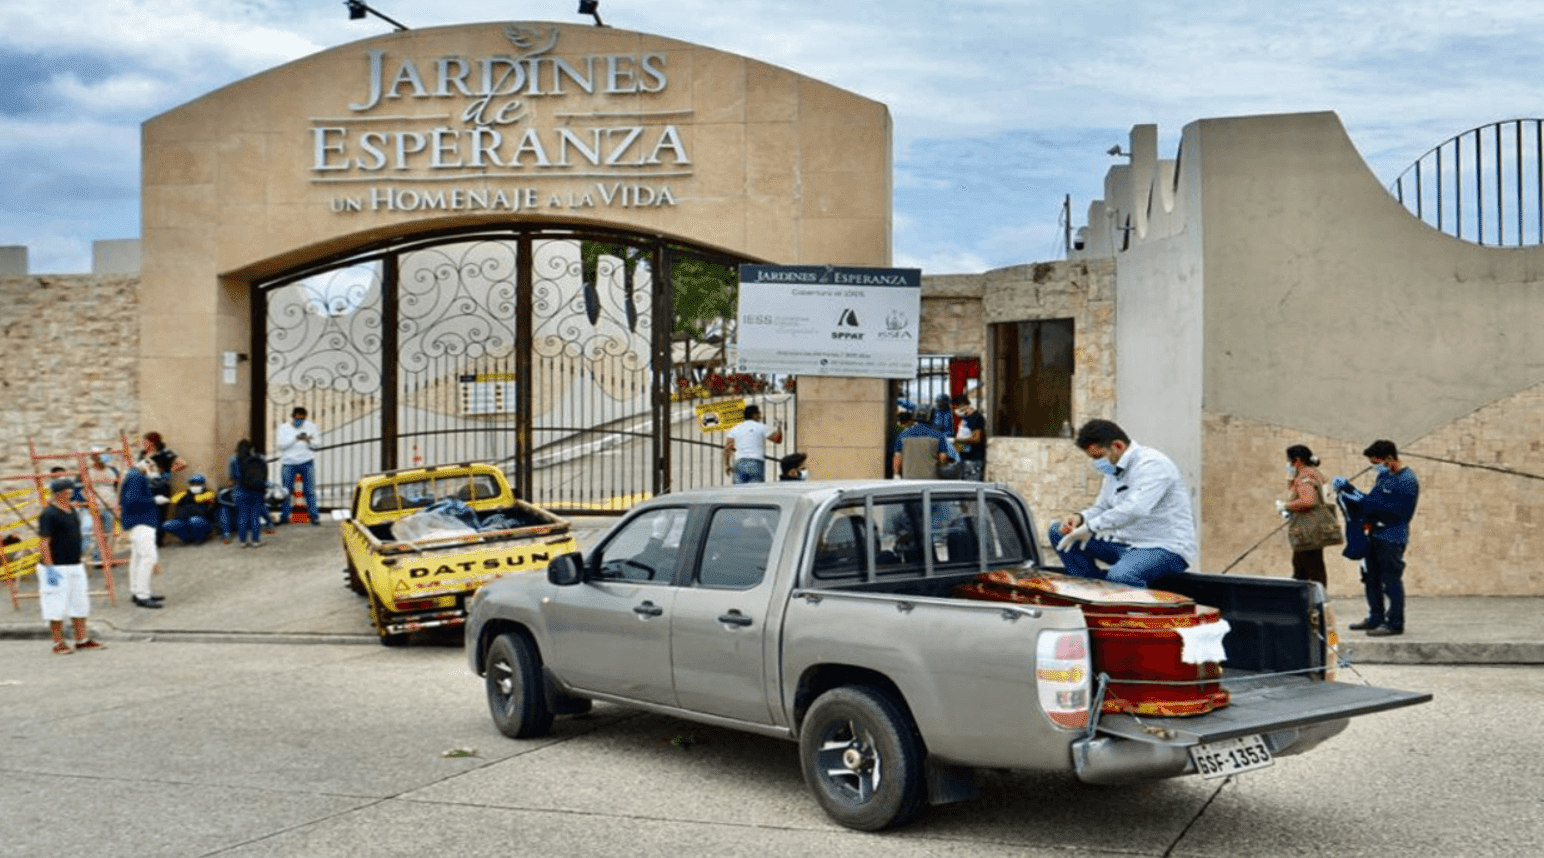 Guayaquil, the city most affected by the coronavirus in Ecuador, tries to respond with cardboard coffins to the high demand for caskets caused by the pandemic, the institution reported on Sunday. The coffins in the port of Guayaquil, the economic engine of Ecuador, are sold for $400, in the case of the cheapest, but in the city the suppliers are in demand.